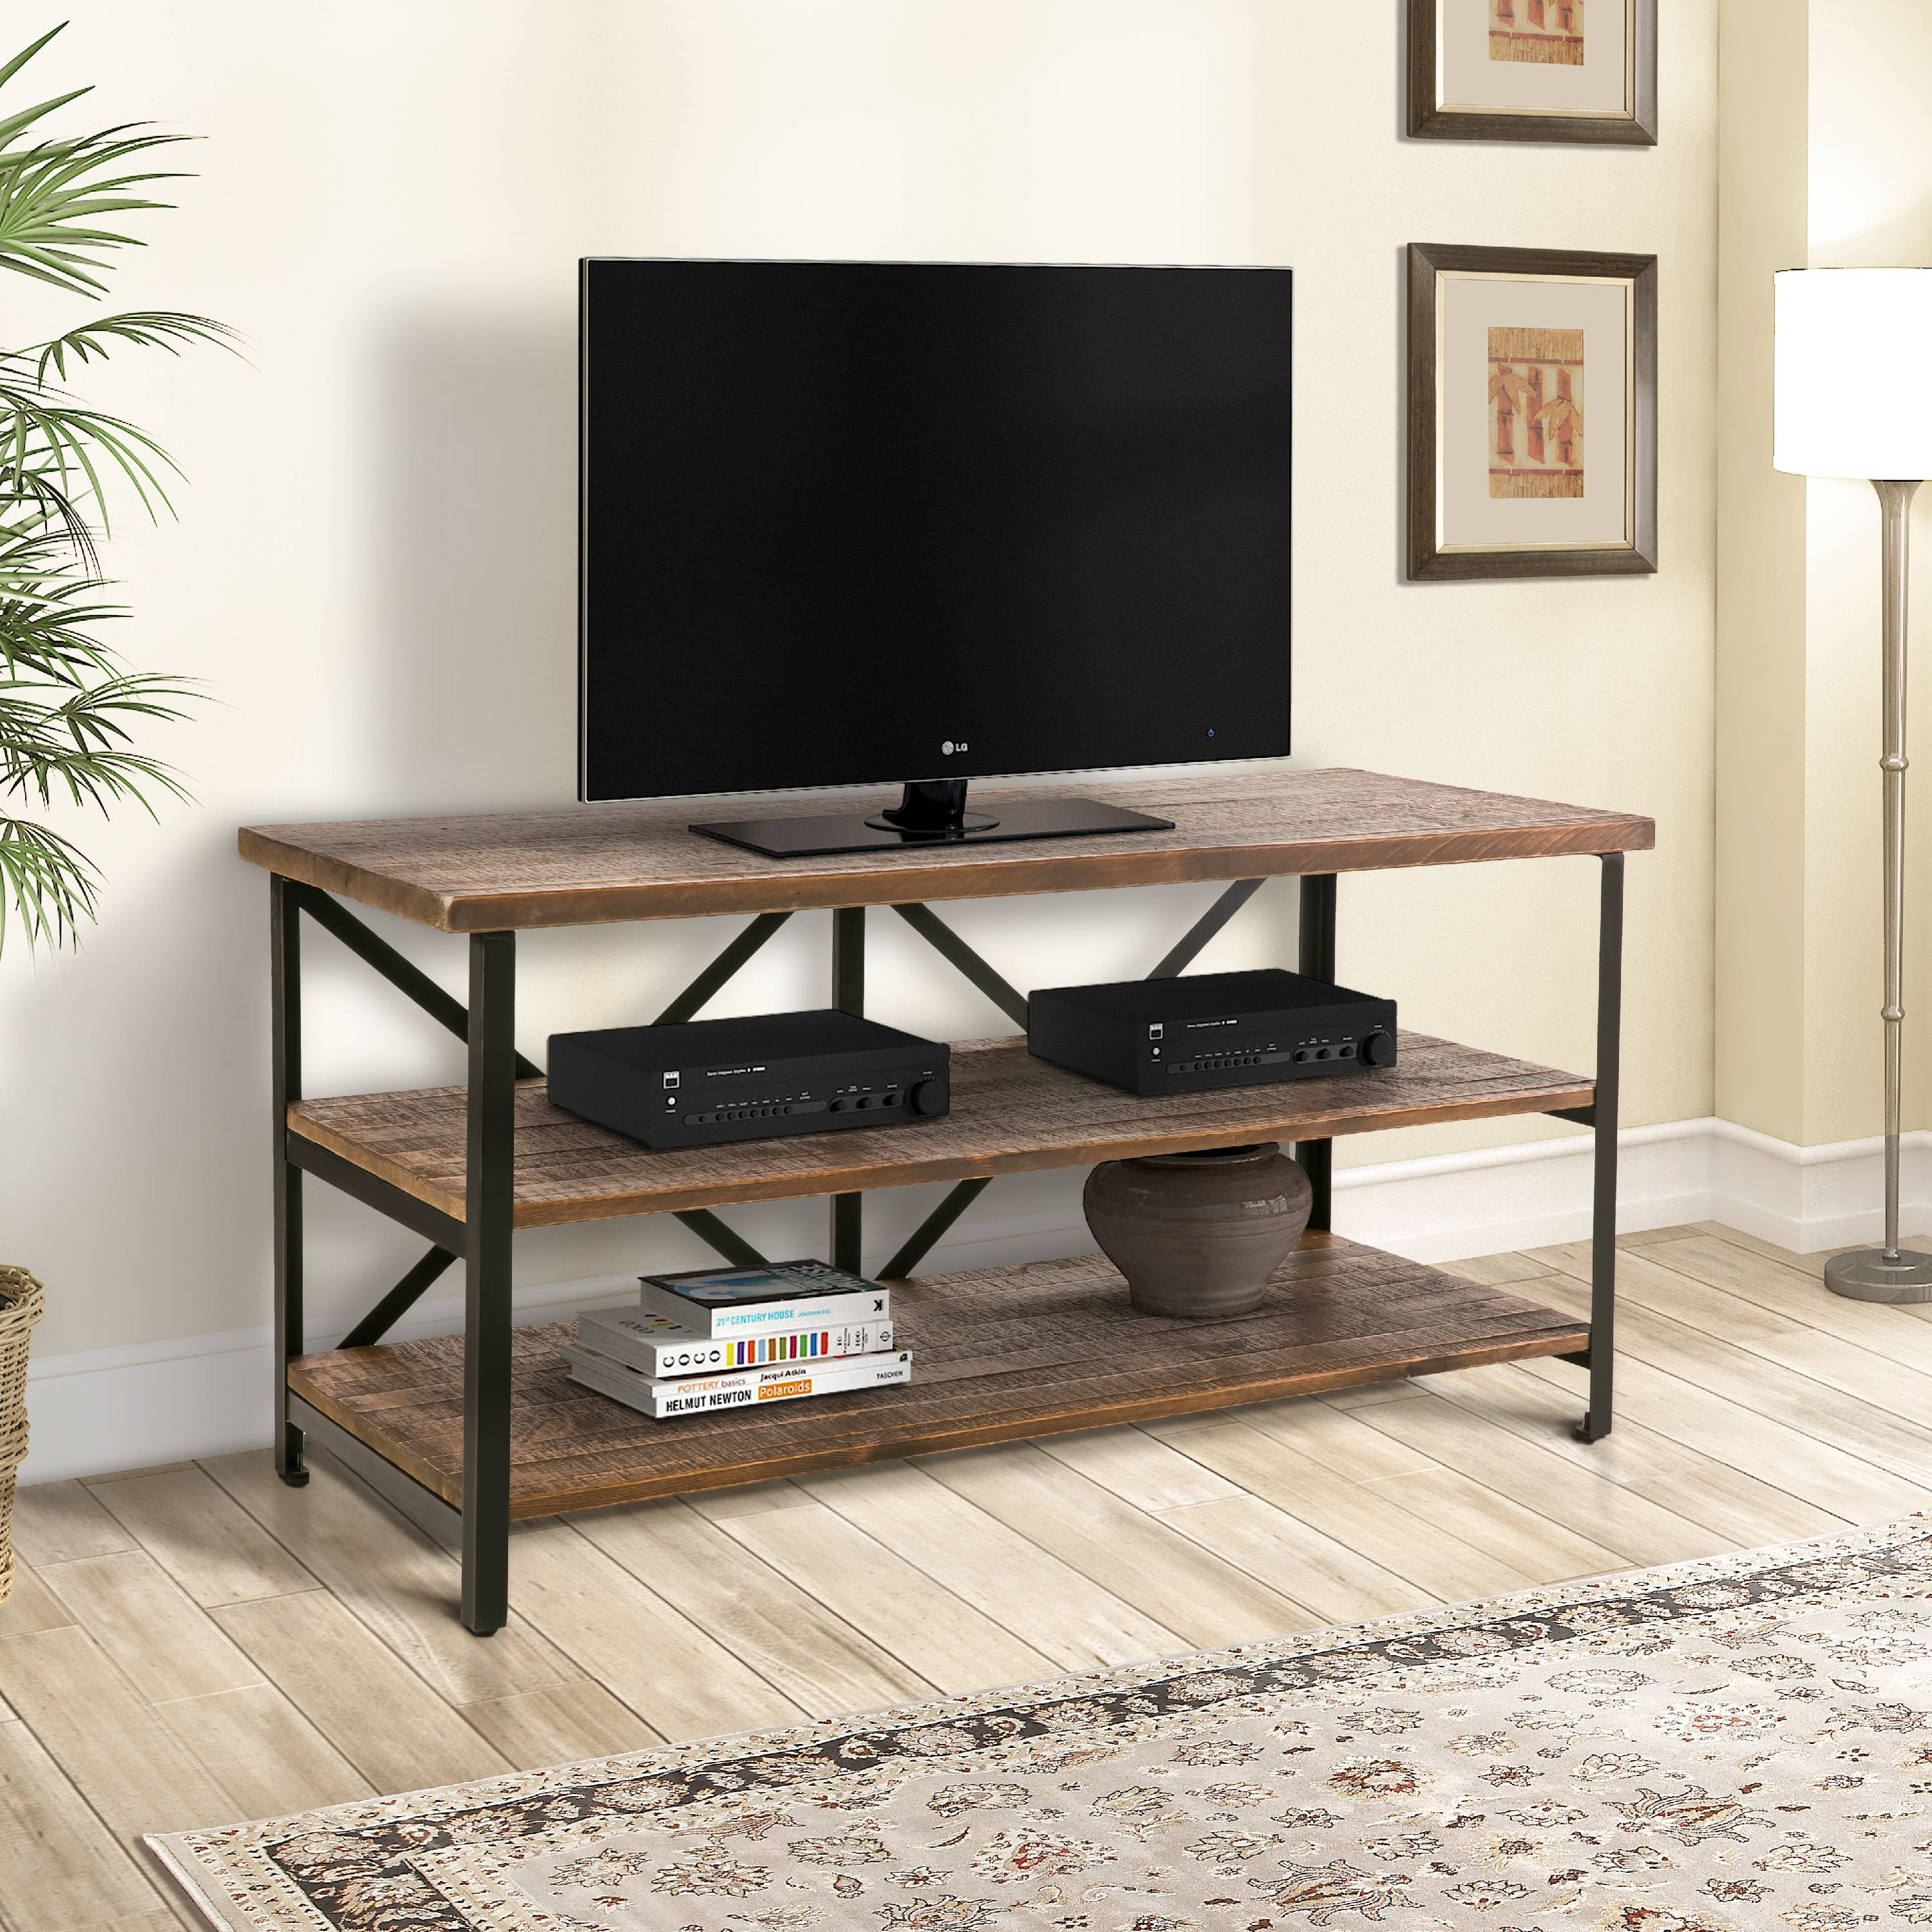 Harper&Bright Designs Solid Wood TV Stand with Metal Frame/Three Shelves for TVs up to 60""